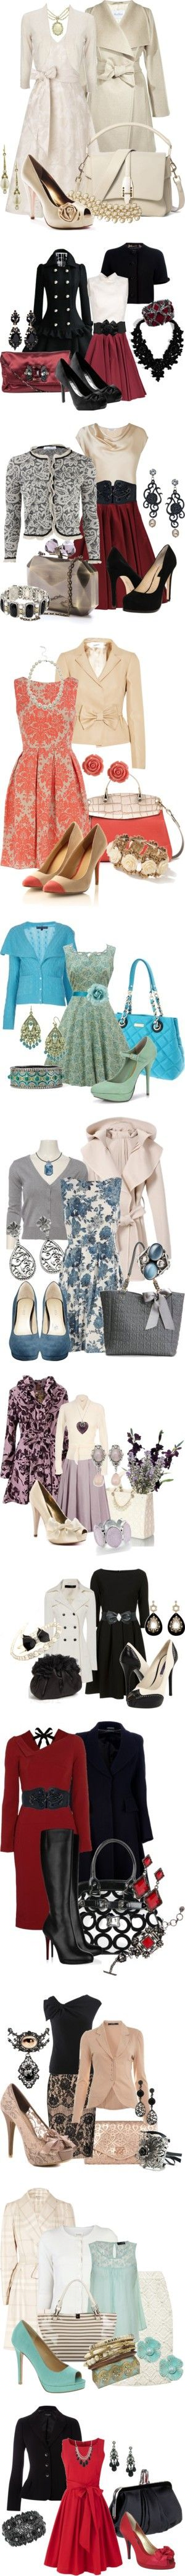 Let's Play Dress Up by stylesbyjoey on Polyvore featuring MaxMara, 1928, Phase Eight, Wallis, Theory, Banana Republic, Paris Hilton, brocade dresses, shrugs and coats